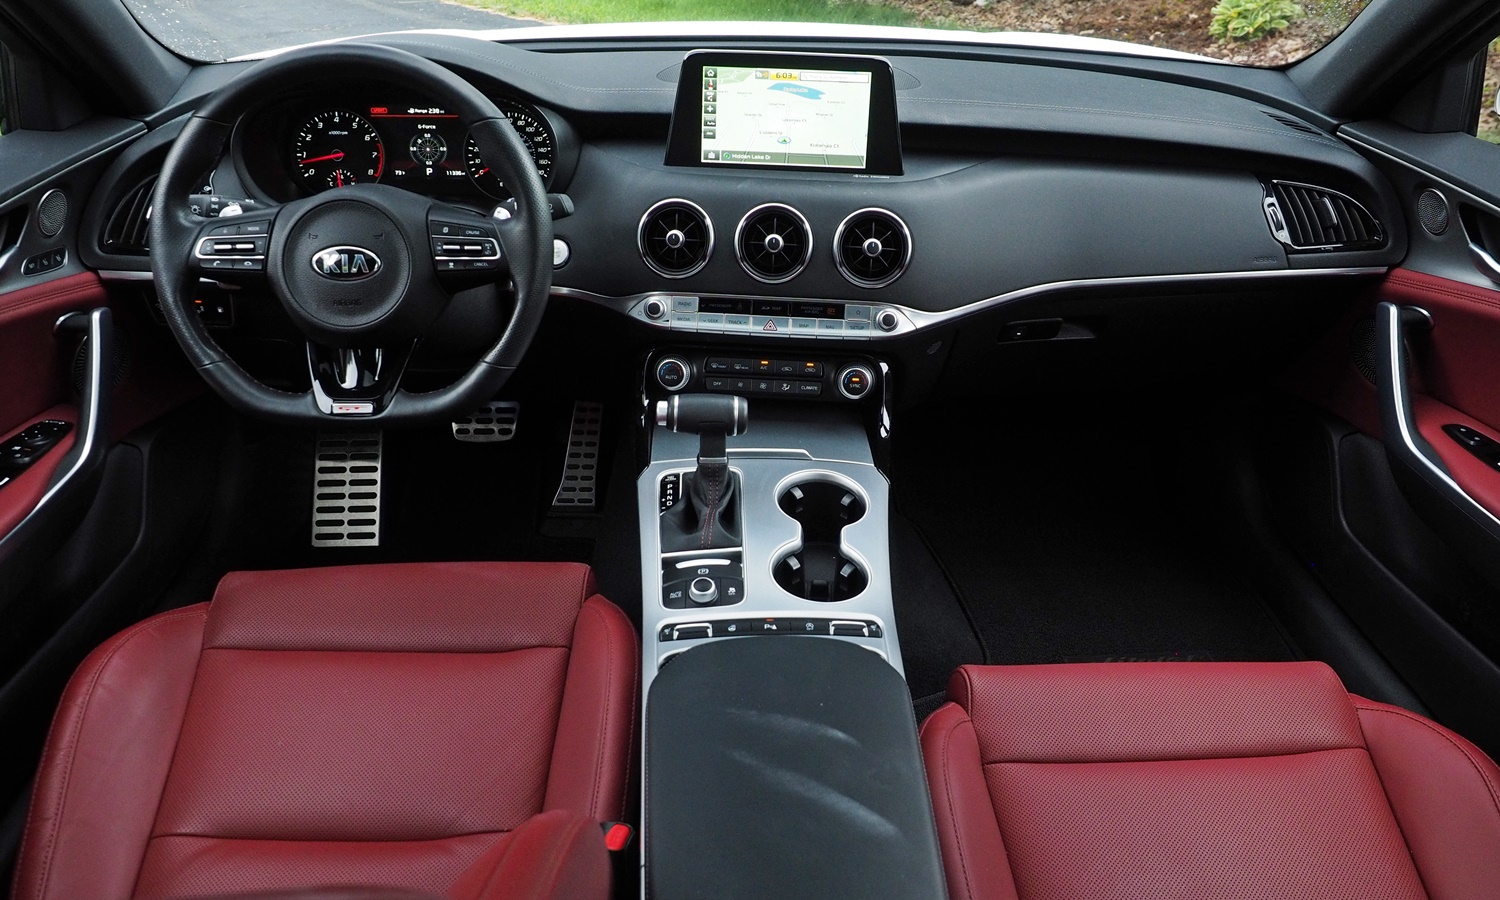 Kia Stinger Photos: Kia Stinger GT instrumen panel full